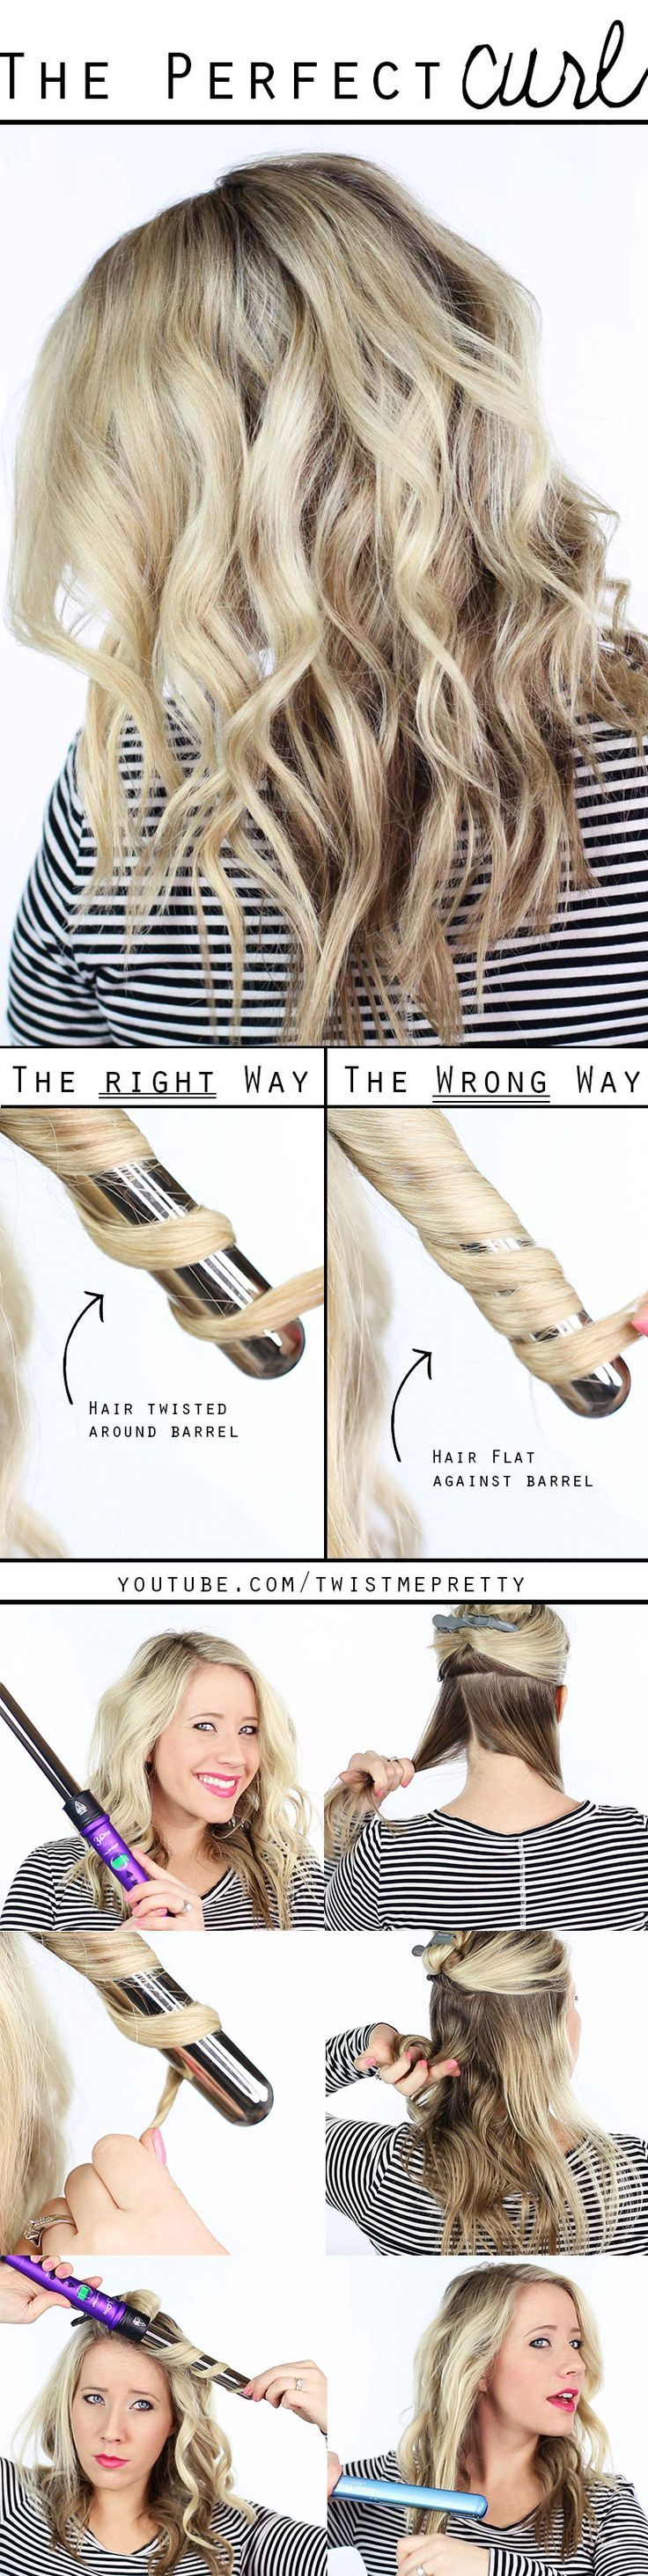 5 Curling Wand Tutorials to Prevent You From Burning Your Fingerprint Off // Thirty Handmade Days